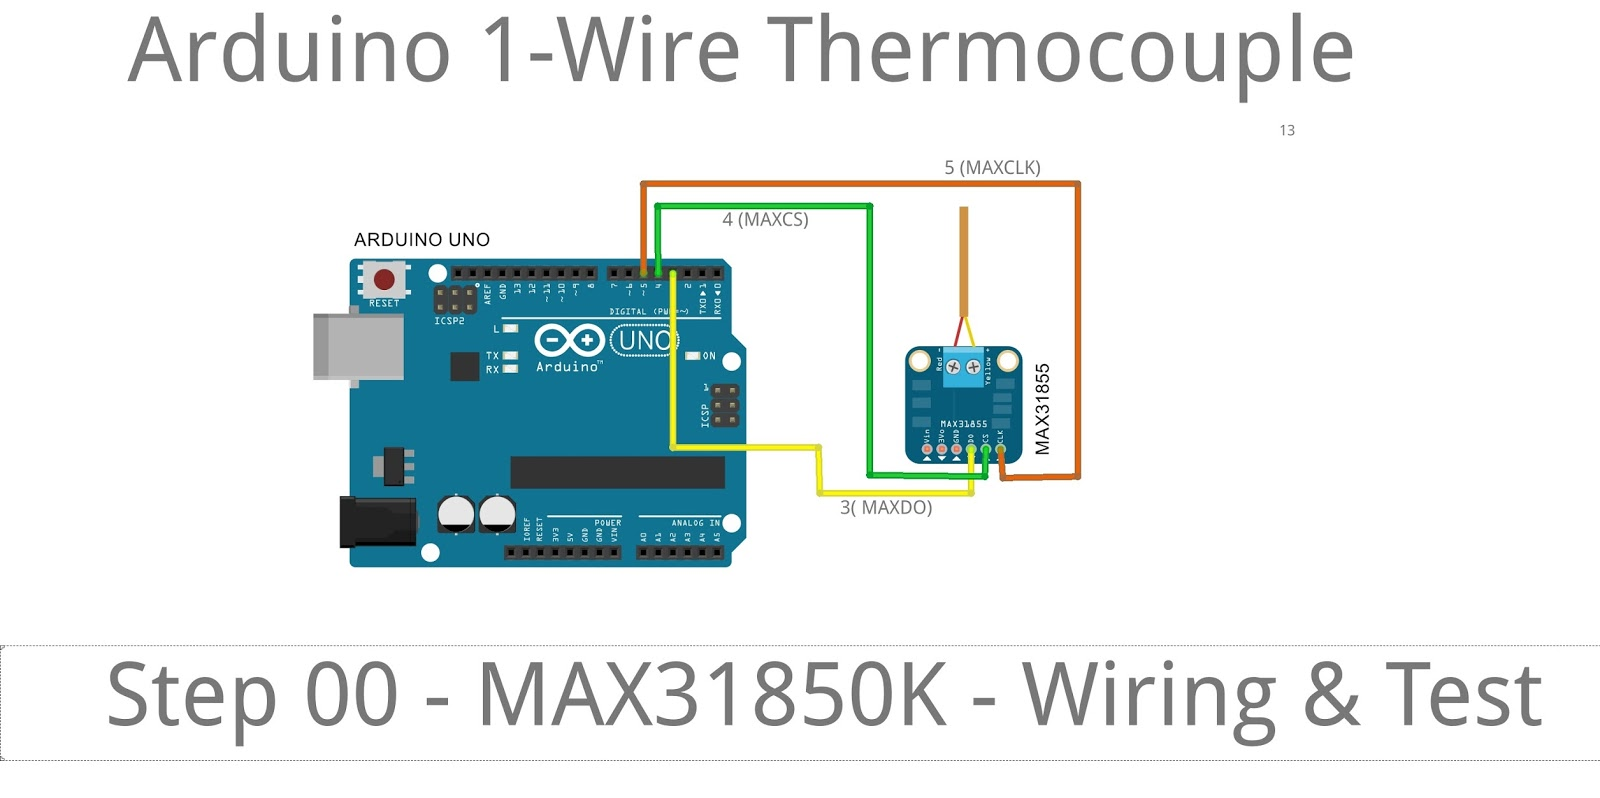 medium resolution of max31855 is an spi interface thermocouple amplifier pinout do 3 ckl 4 cs 5 3v3 gnd here is the schematic